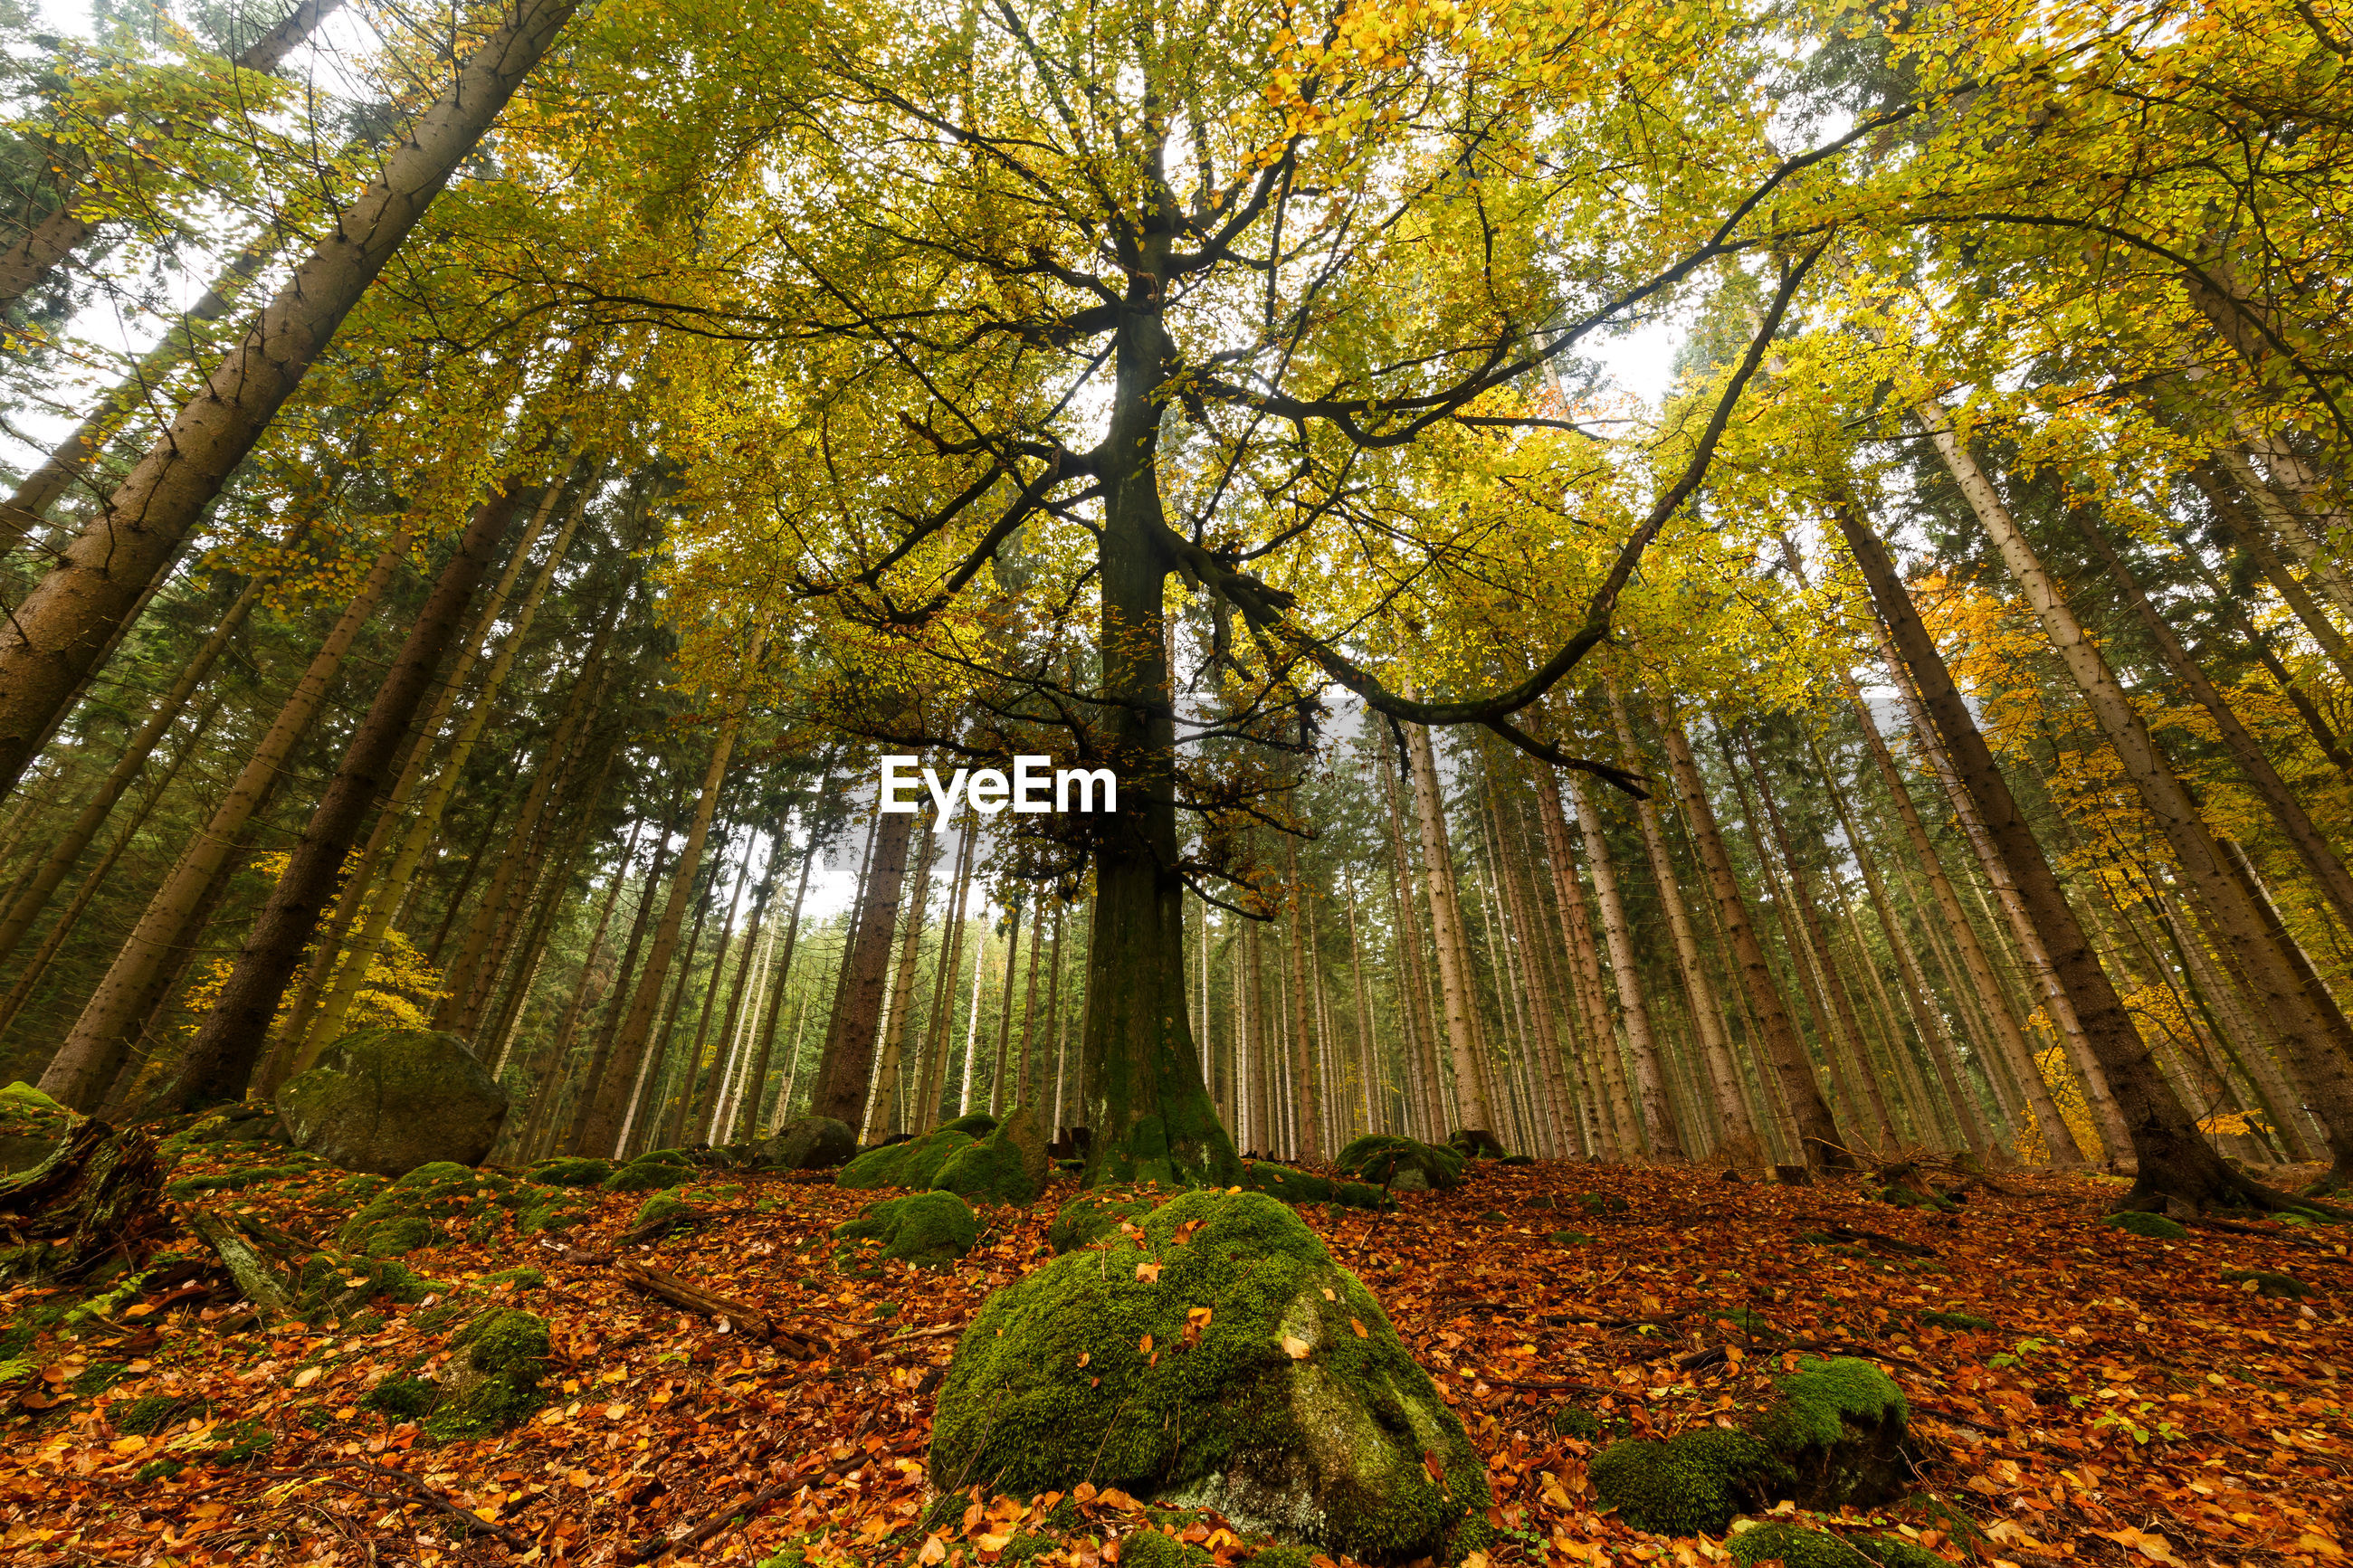 LOW ANGLE VIEW OF TREES AND PLANTS IN FOREST